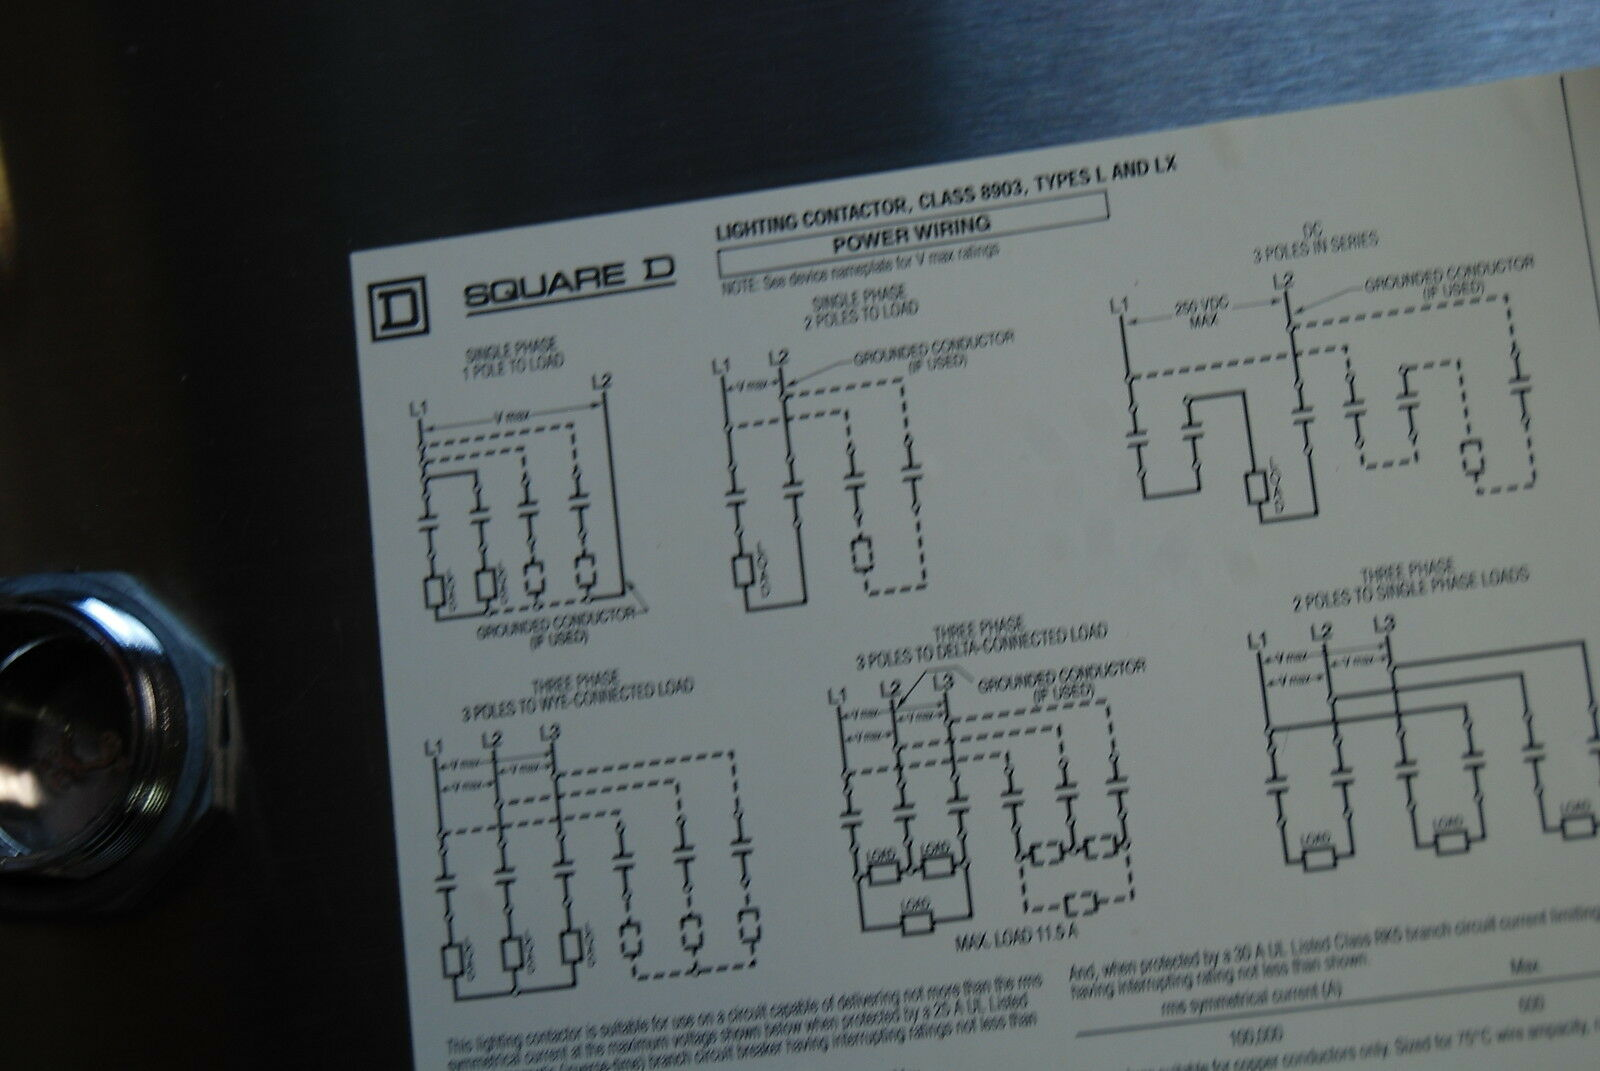 Square D Class 8903 Smg12 30 Amp 4 Pole Mechanically Held Lighting Contactor For Sale Online Ebay